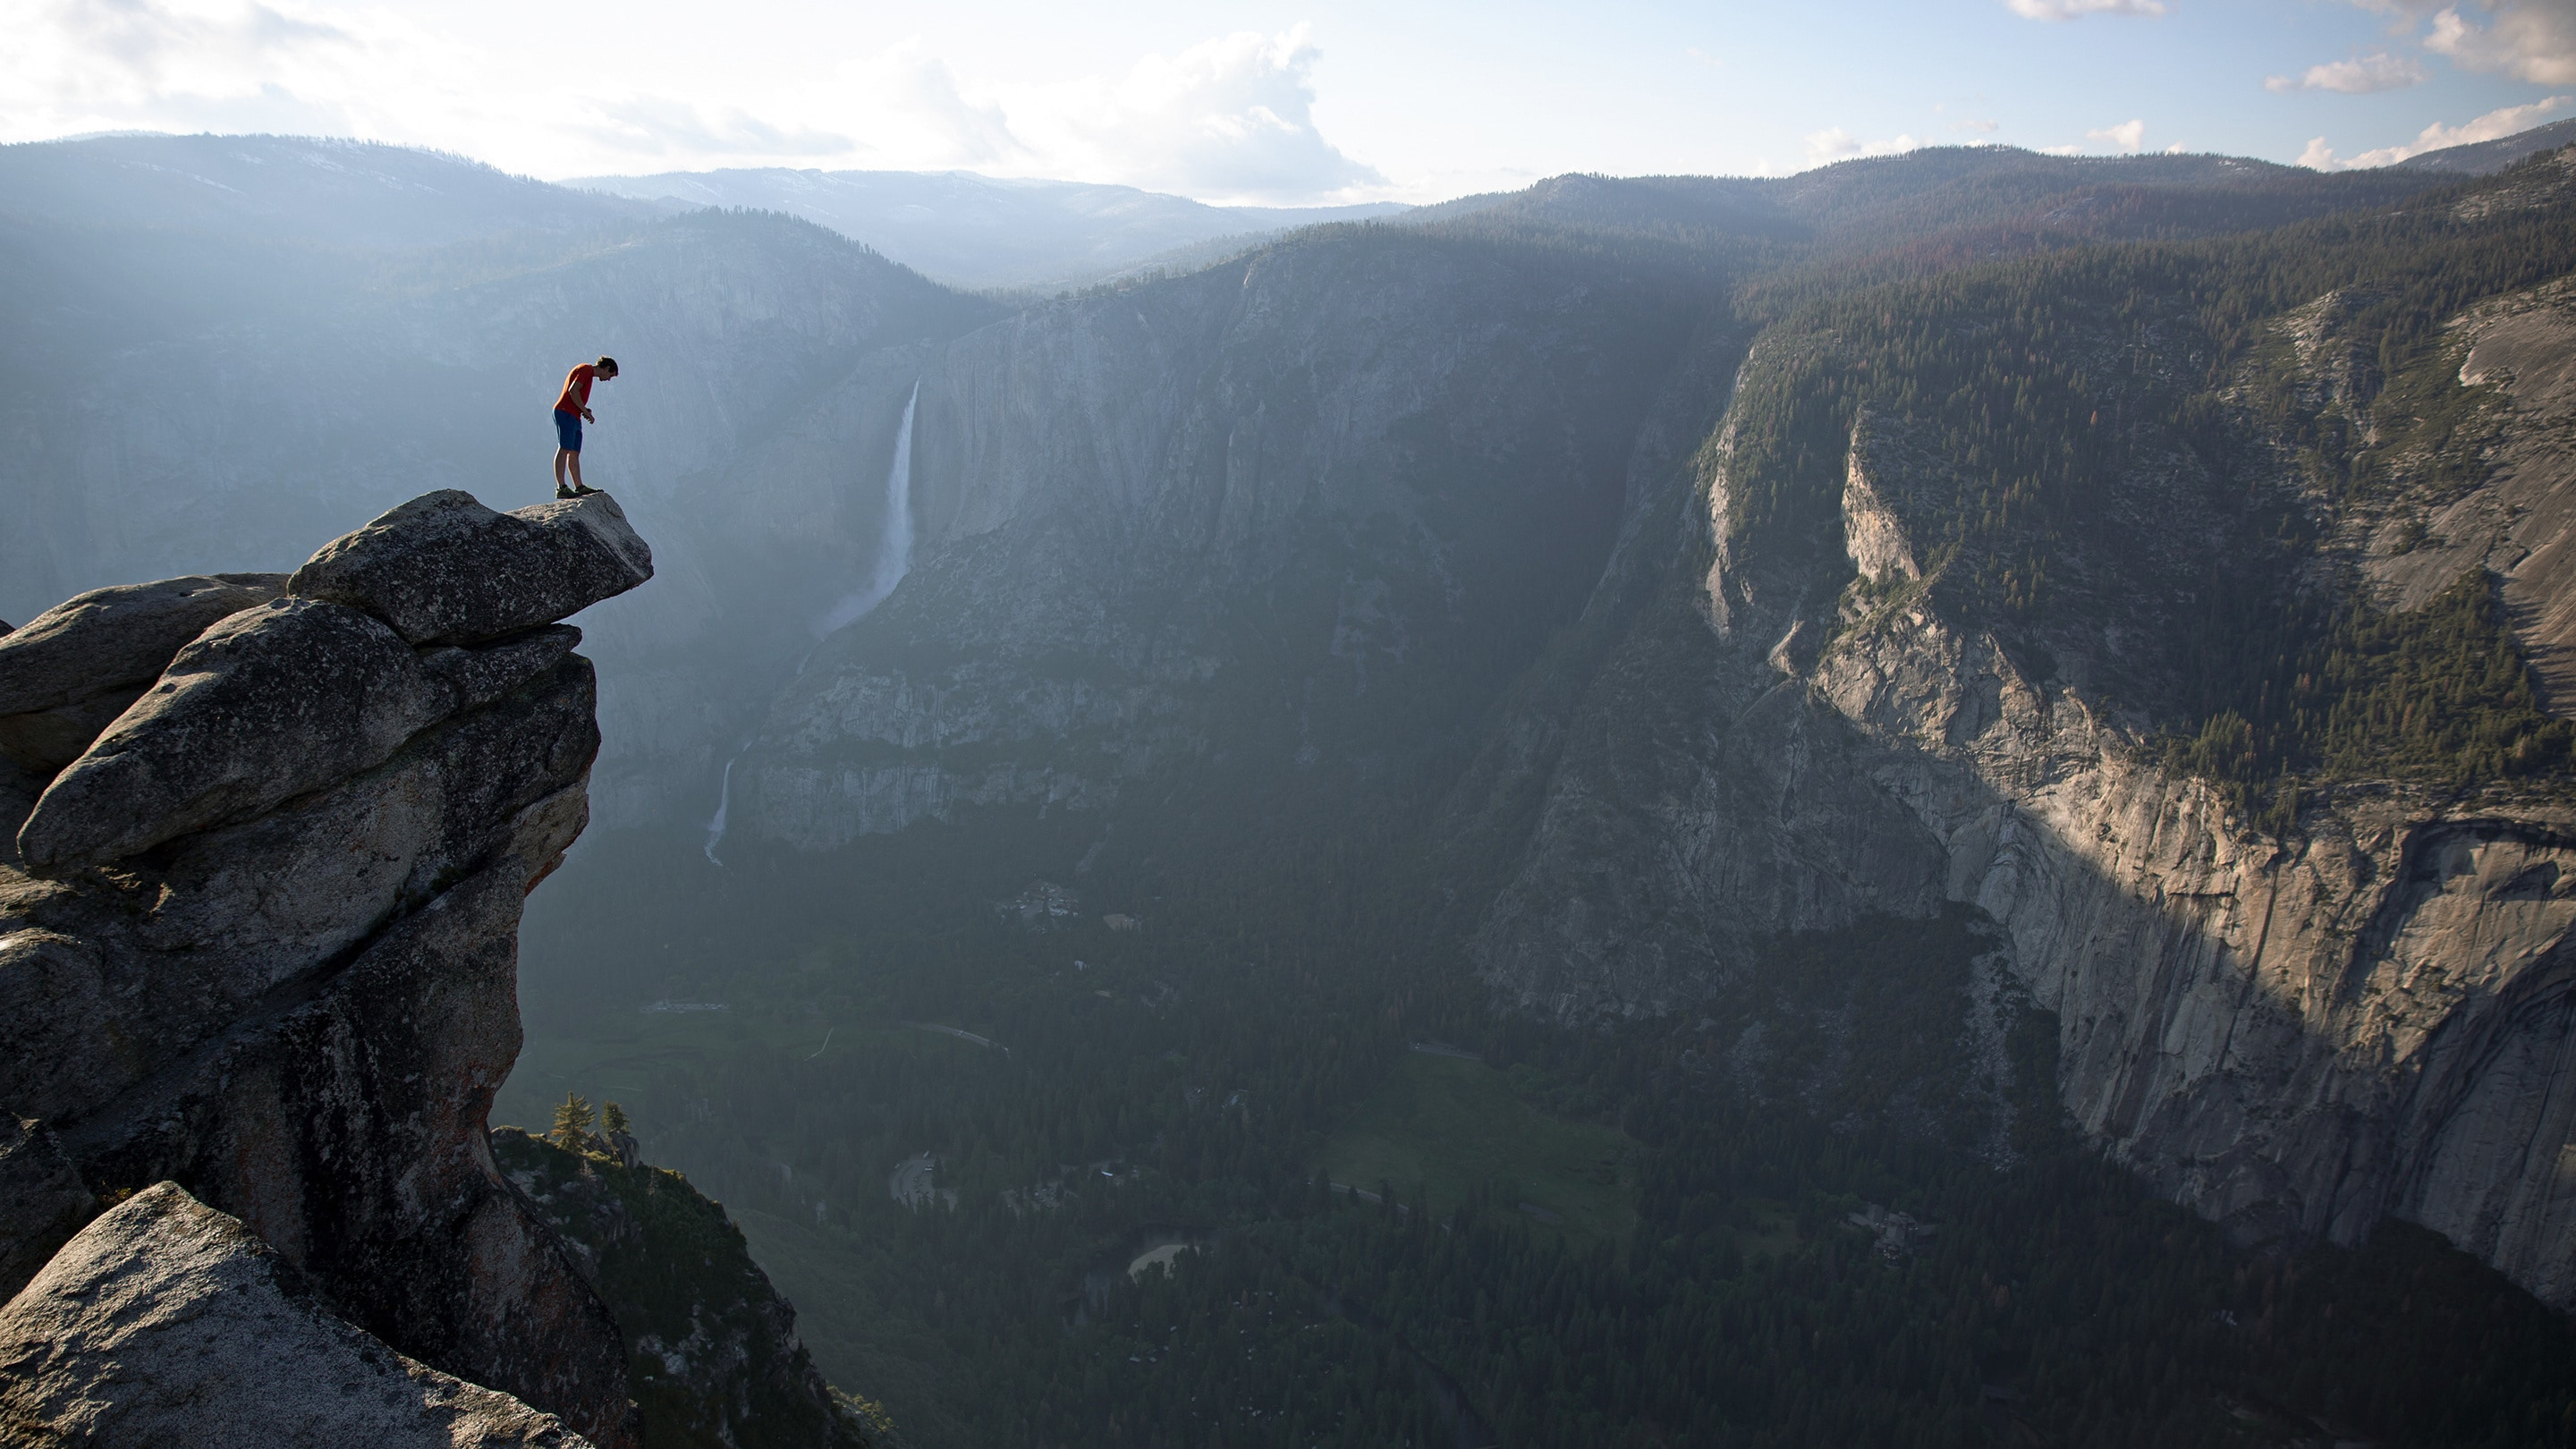 Alex Honnold peers over the edge of Glacier Point in Yosemite National Park. He had just climbed 2,000 feet up from the valley floor. (Photo by National Geographic/Jimmy Chin)